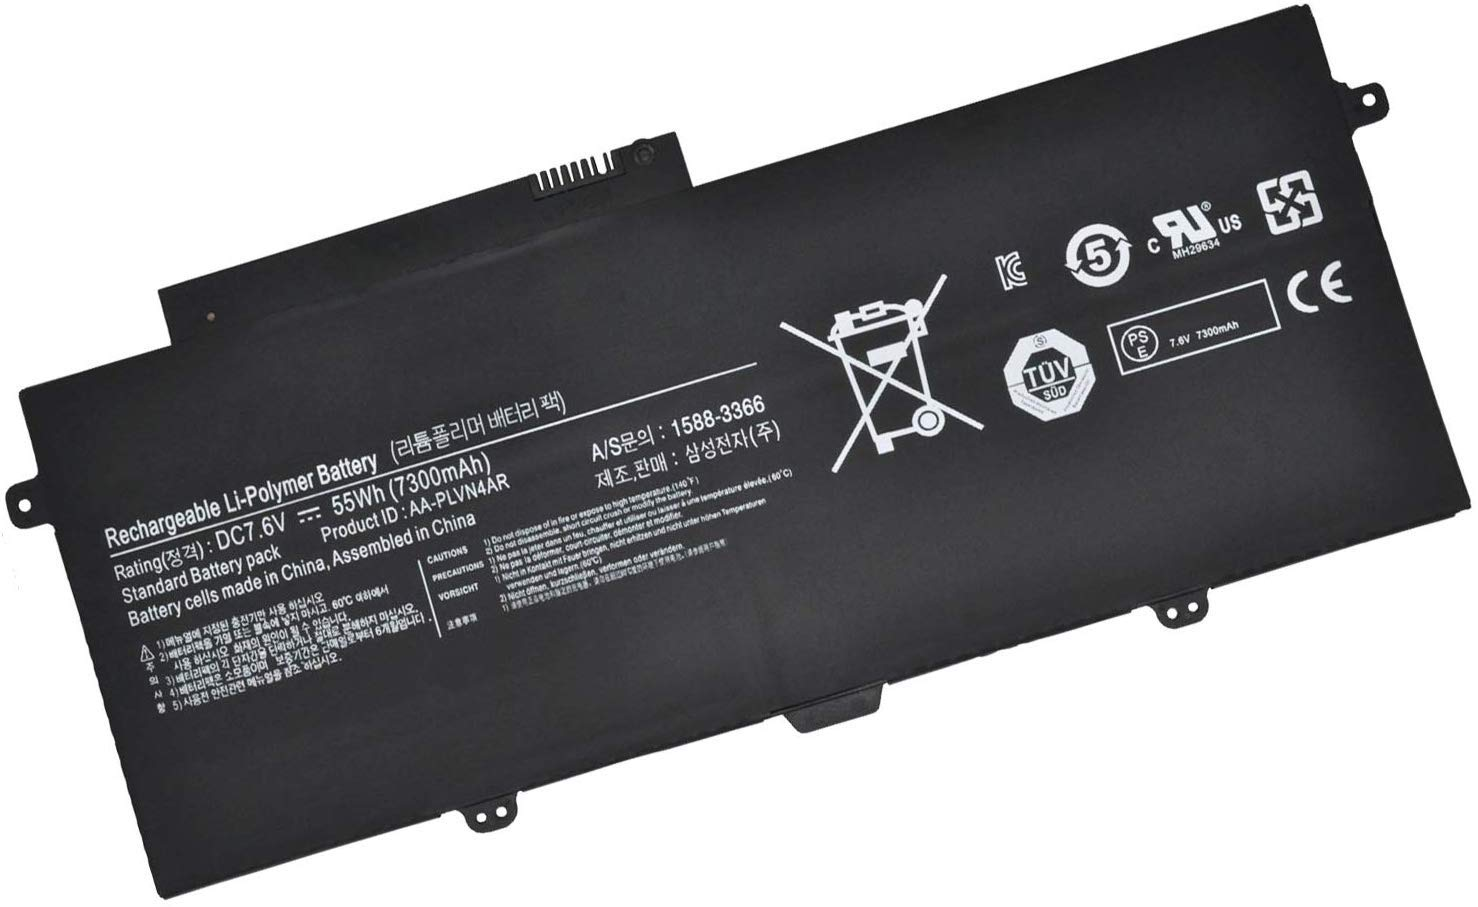 Batterymarket New AA-PLVN4AR Replacement Laptop Battery Compatible with SAMSUNG 1588-3366 BA43-00364A (7.6V 55Wh)